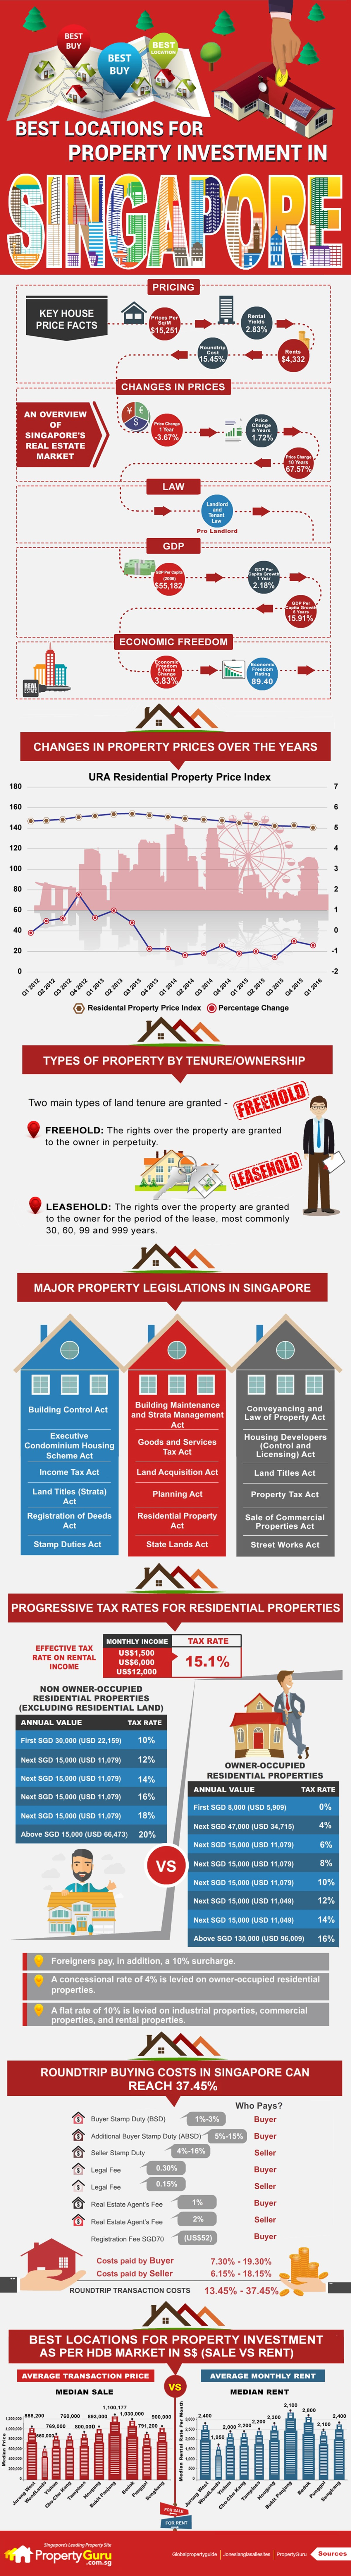 PGSG-Best-locations-for-property-investment-in-Singapore_V5-edited